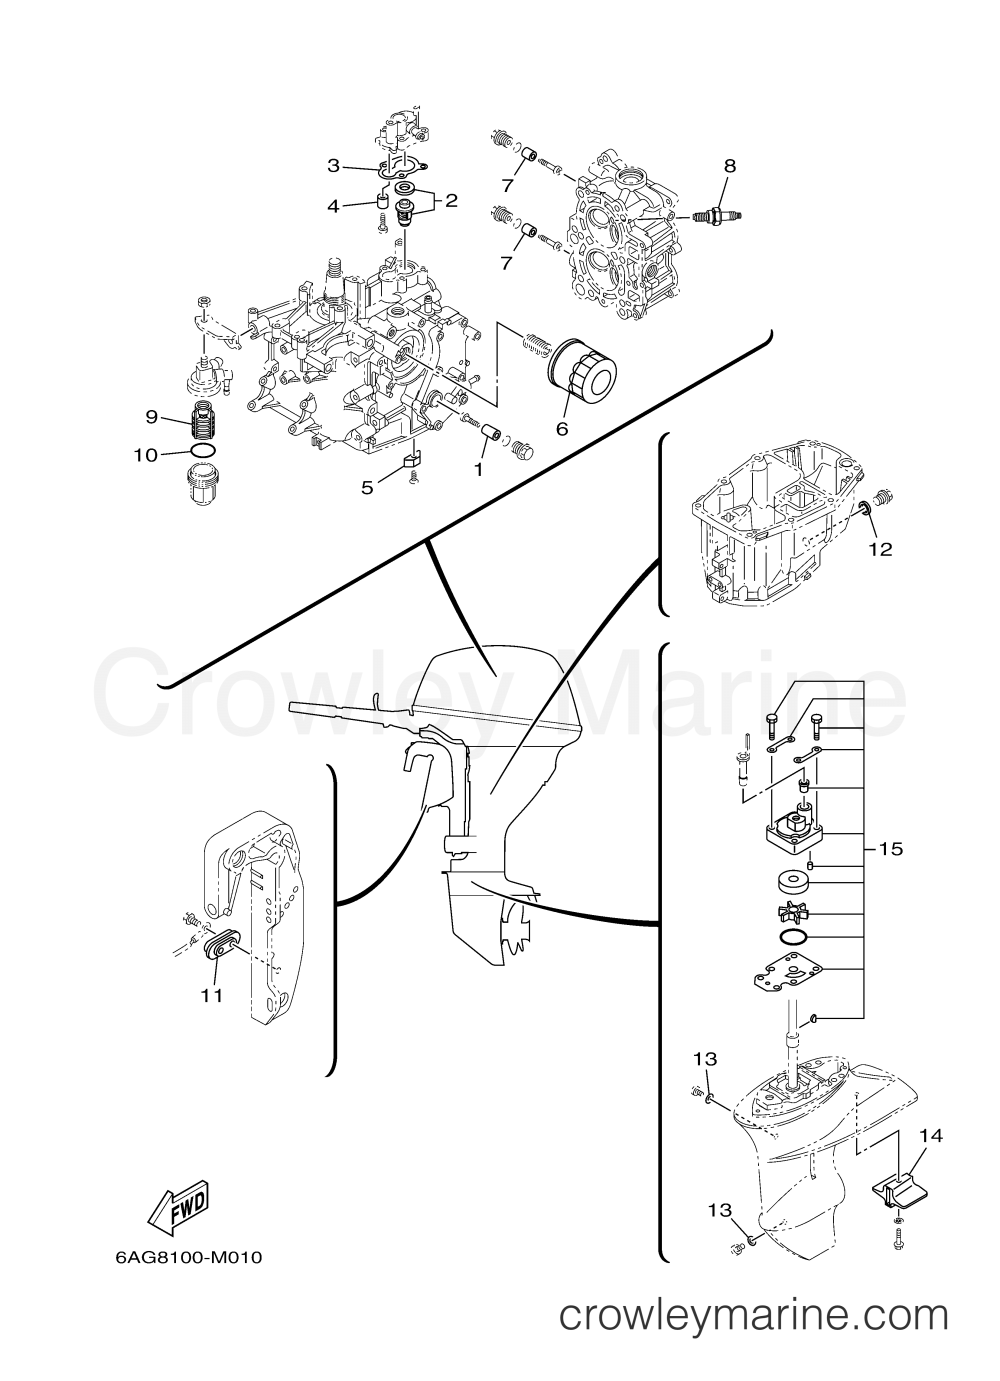 medium resolution of yamaha outboards diagrams wiring diagram home yamaha outboards diagrams diagram of 2004 f225turc yamaha outboard electrical